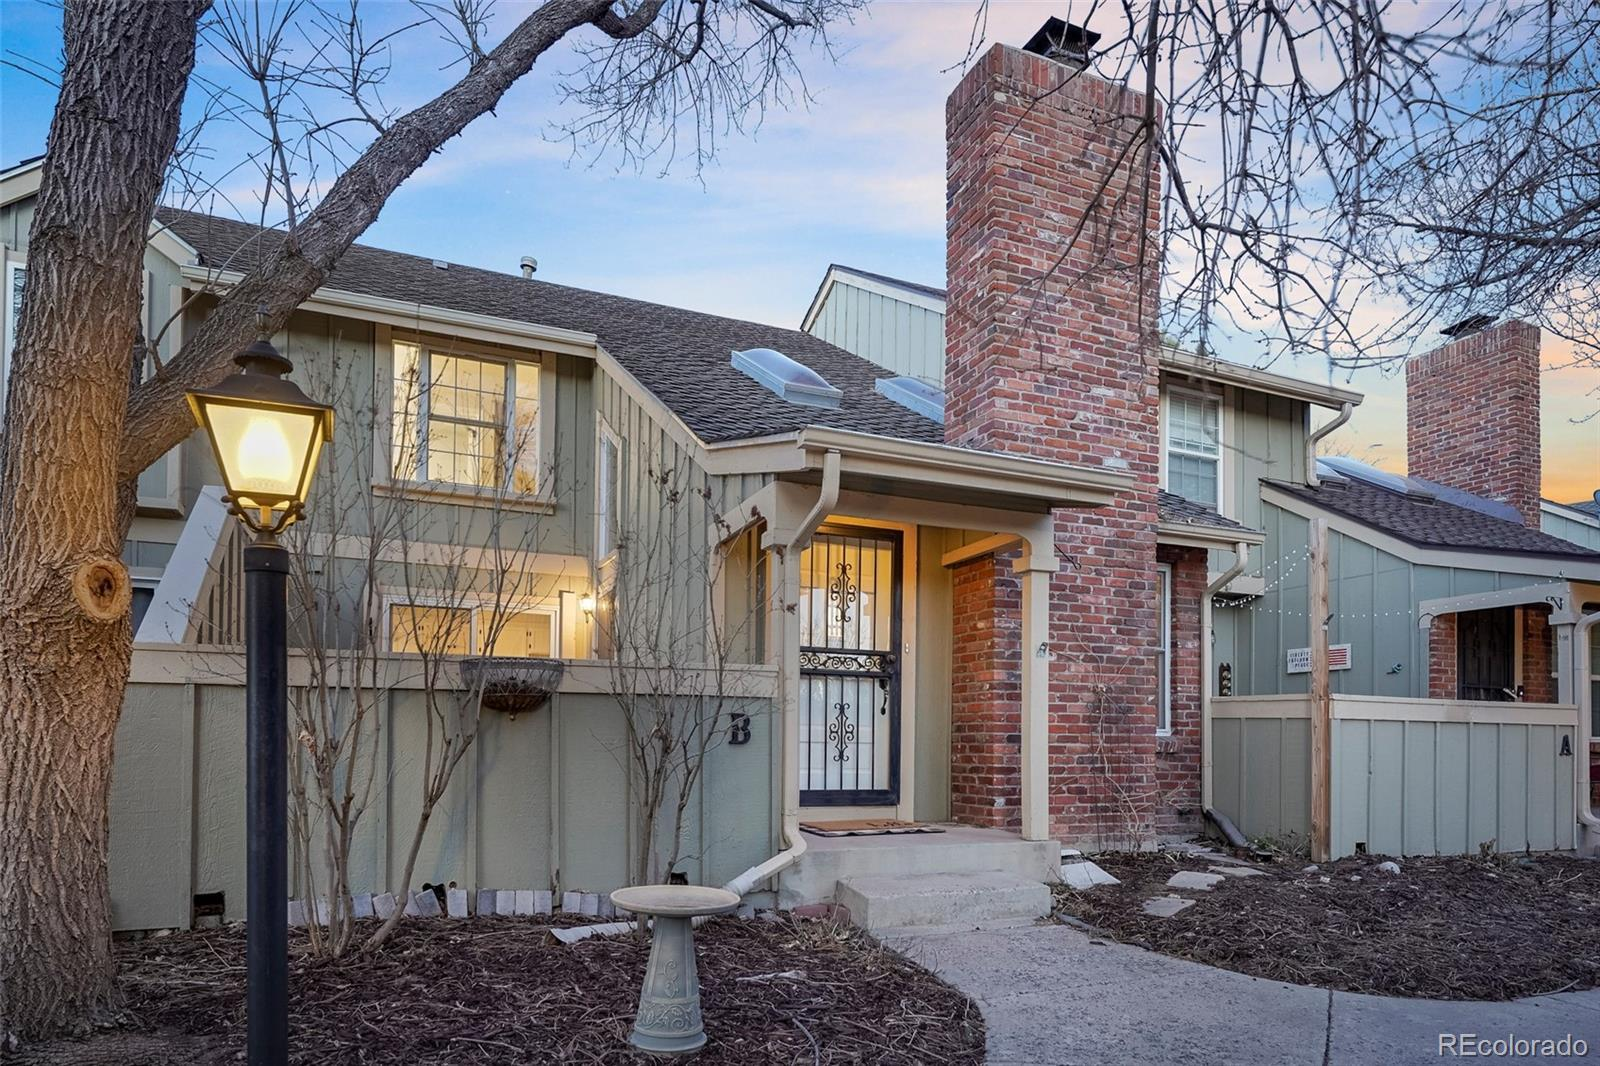 7775 S Curtice Drive #B, Littleton, CO 80120 - #: 6335078